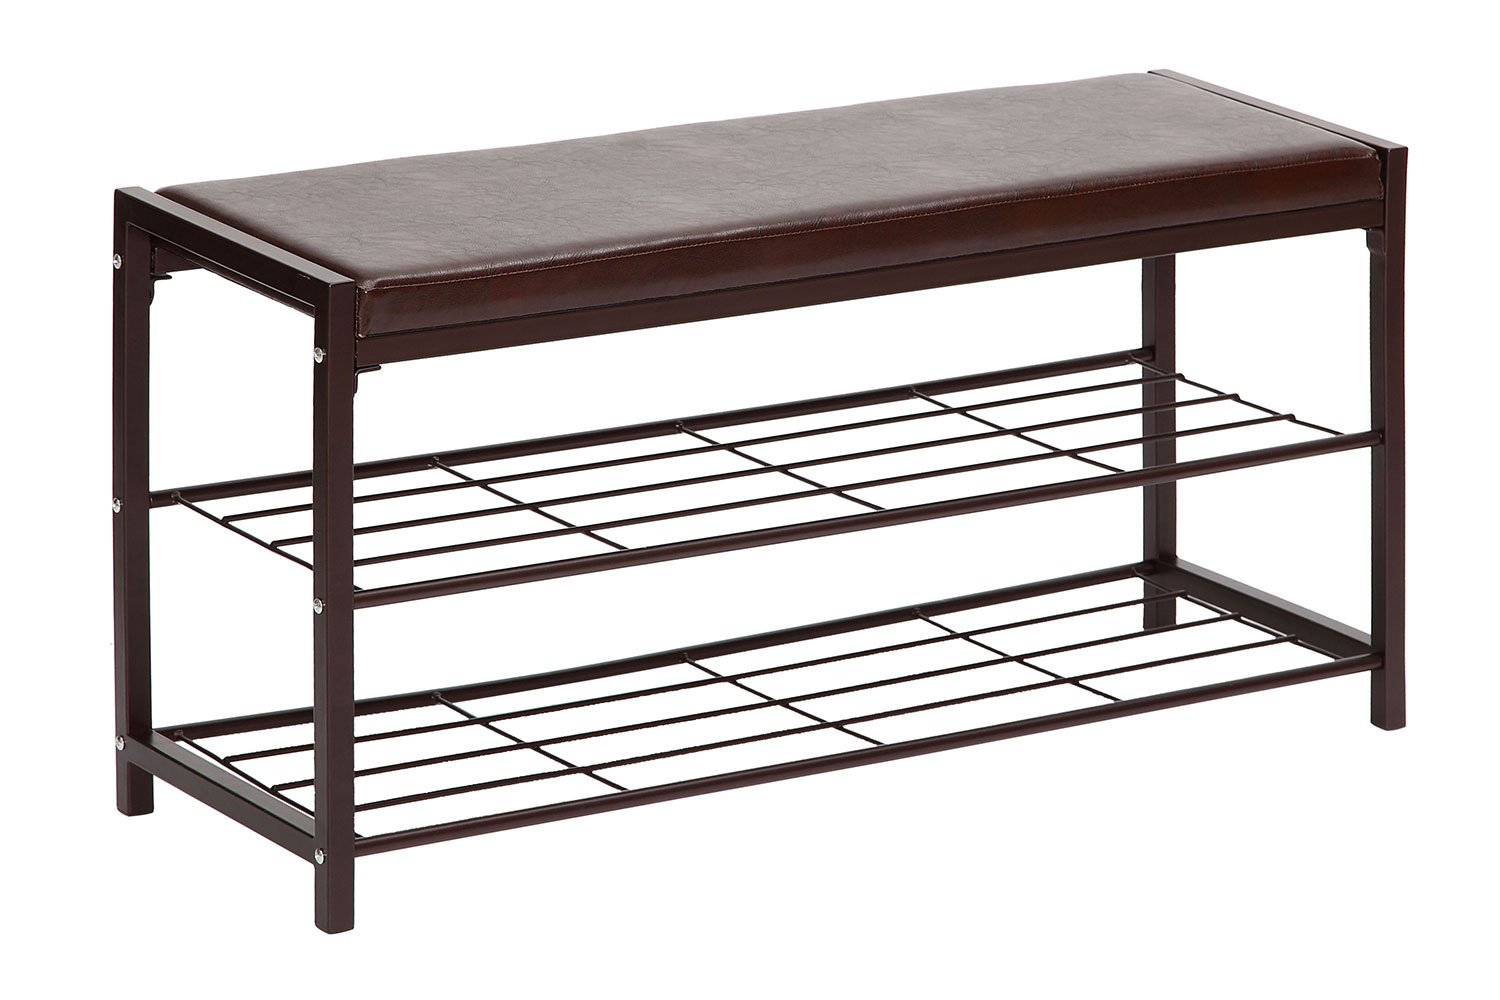 Storagemaniac 2 Tier Shoe Rack Bench With Faux Leather Seat Entryway Shoe Storage